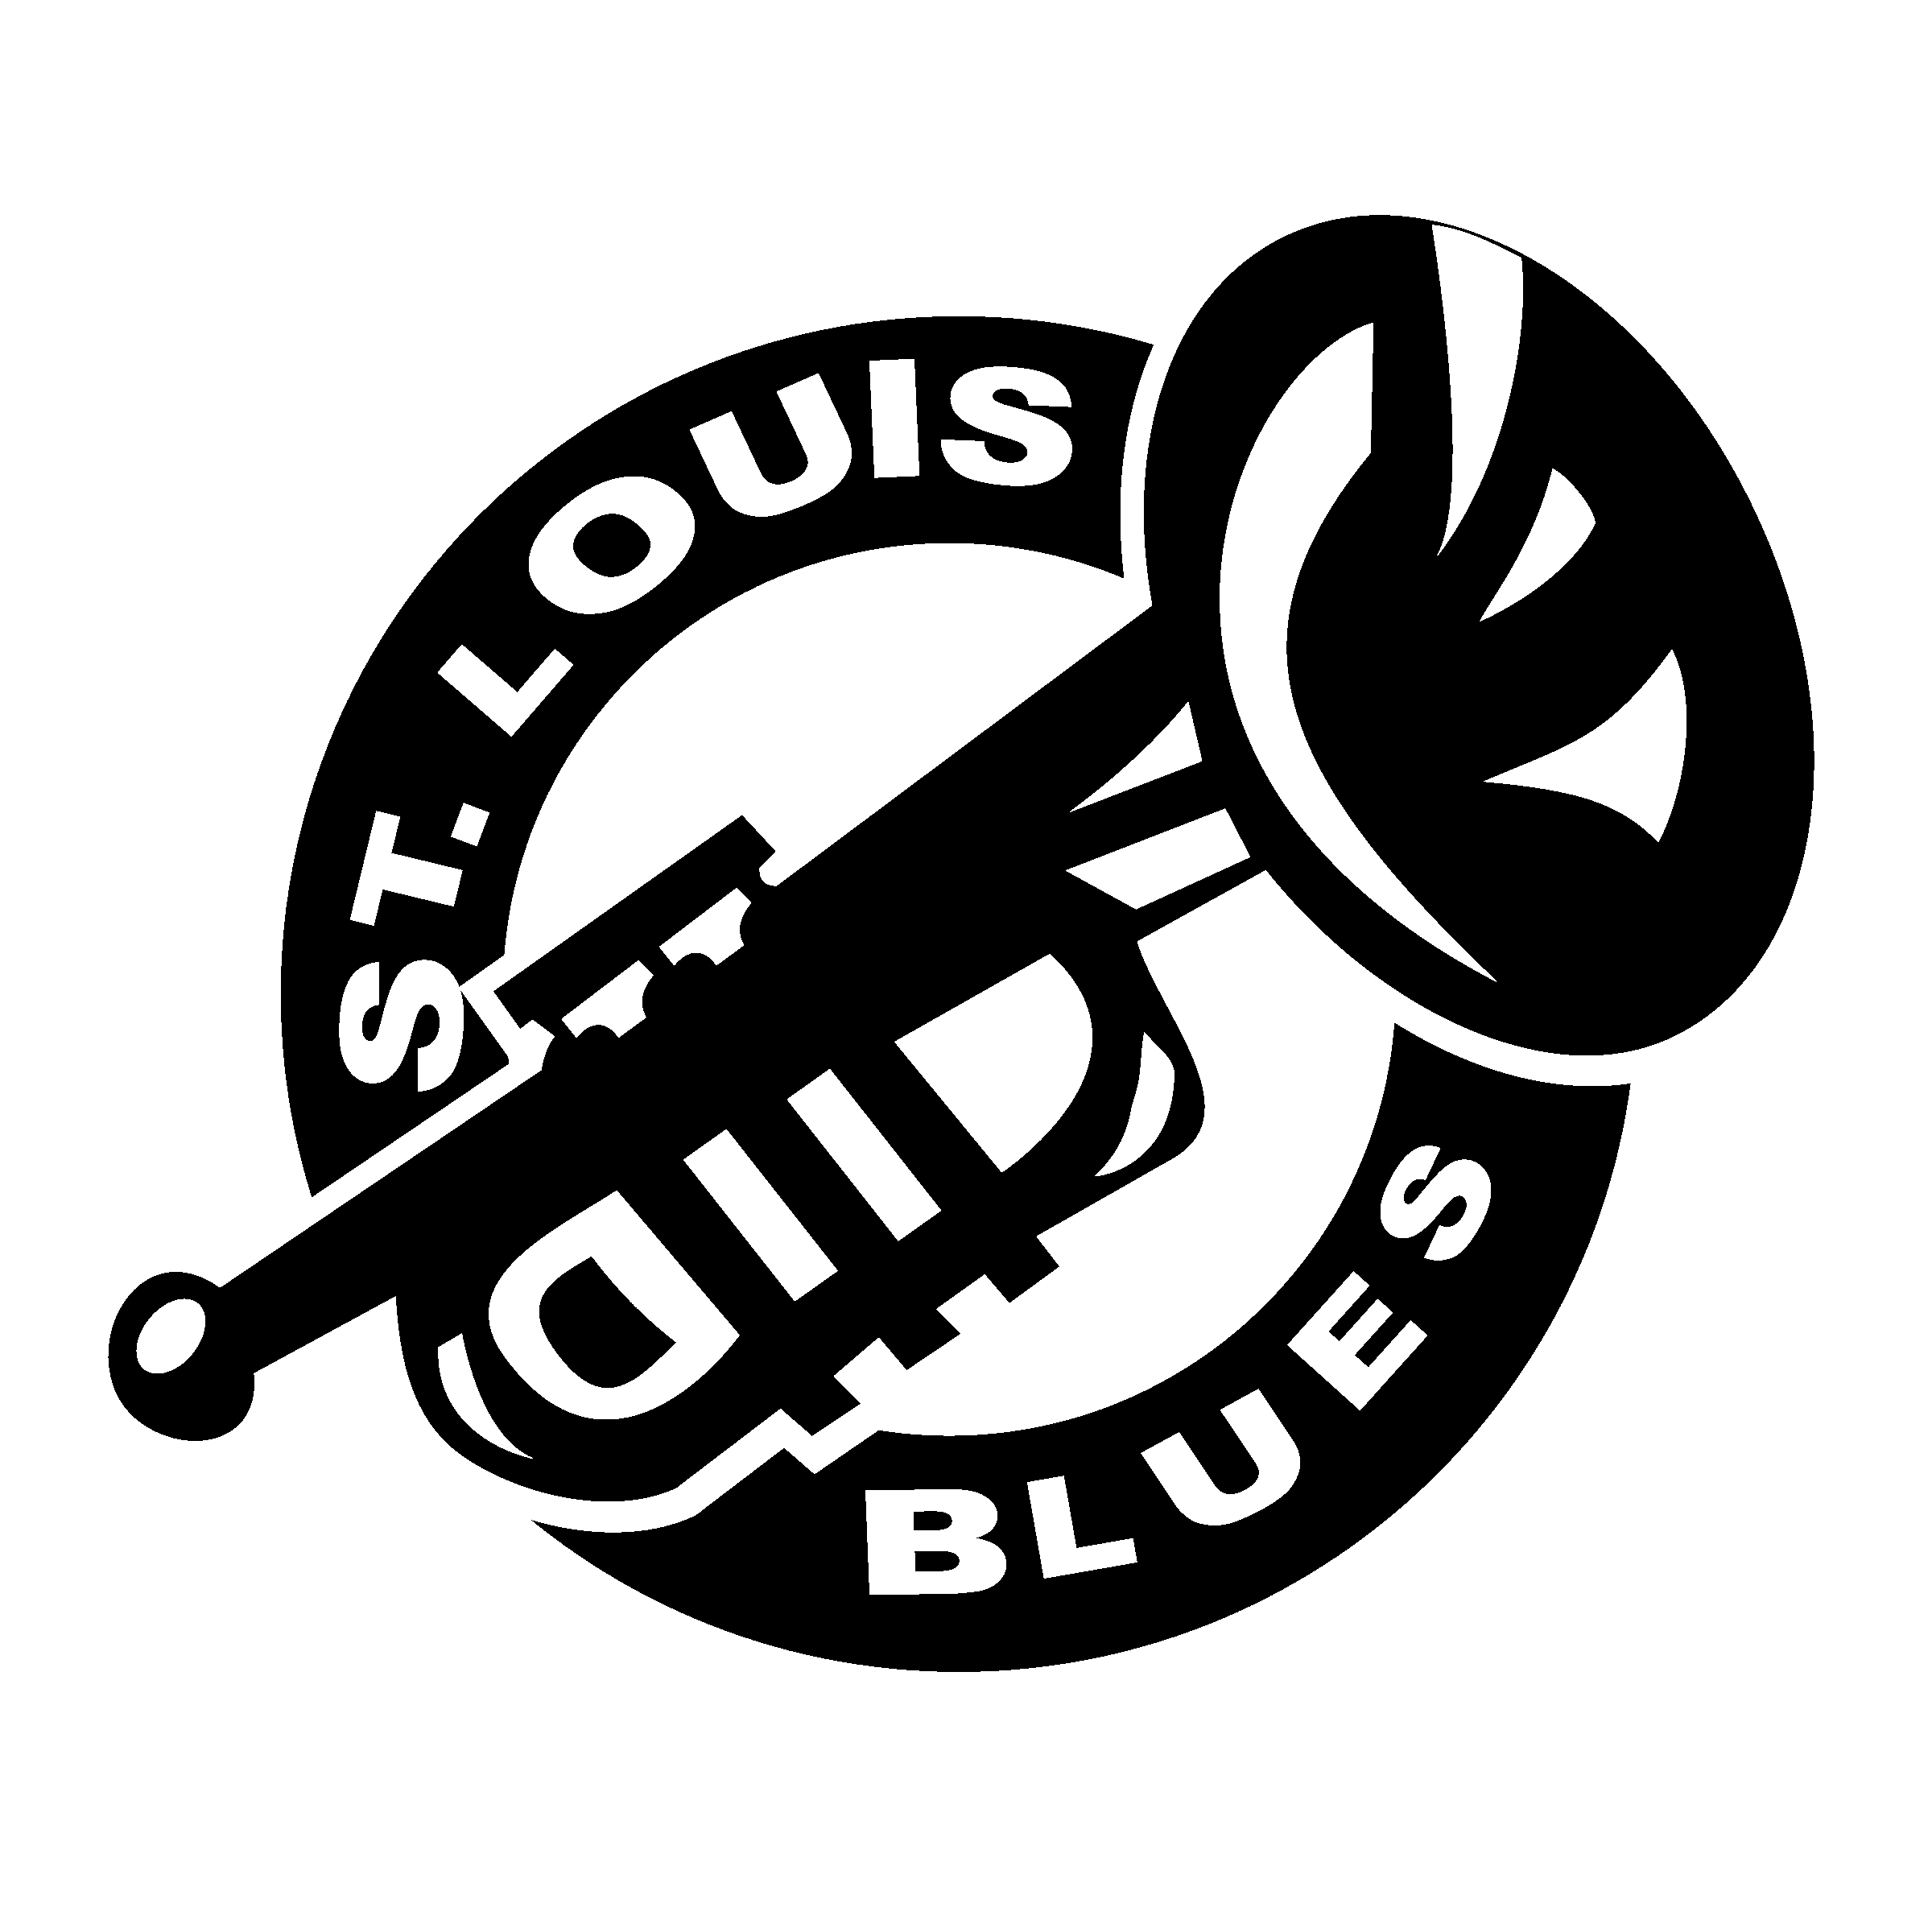 St Louis Blues Logo Black And White